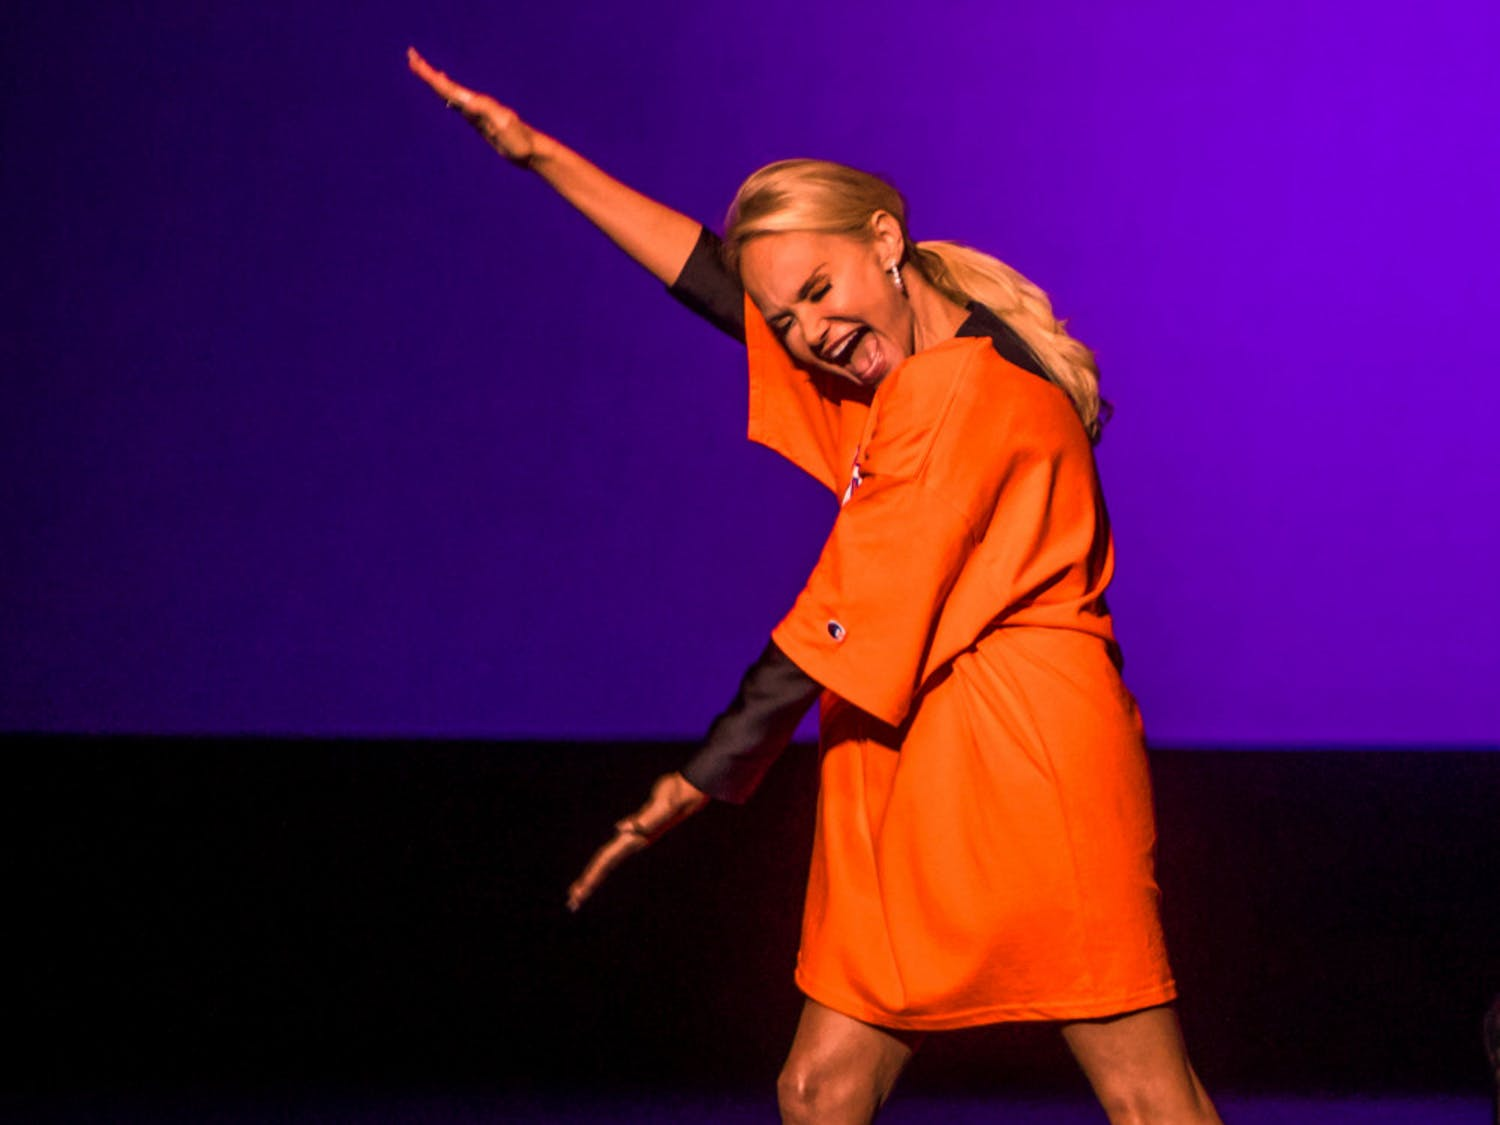 Kristin Chenoweth, the 50-year-old Emmy-winning and Tony award-winning actress and singer, performs a Gator Chomp Sunday evening while wearing a Florida Gators T-shirt during the beginning of her show at the Phillips Center for the Performing Arts. About 1,300 people watched as the Broadway star performed, sharing quirky personal anecdotes between songs.